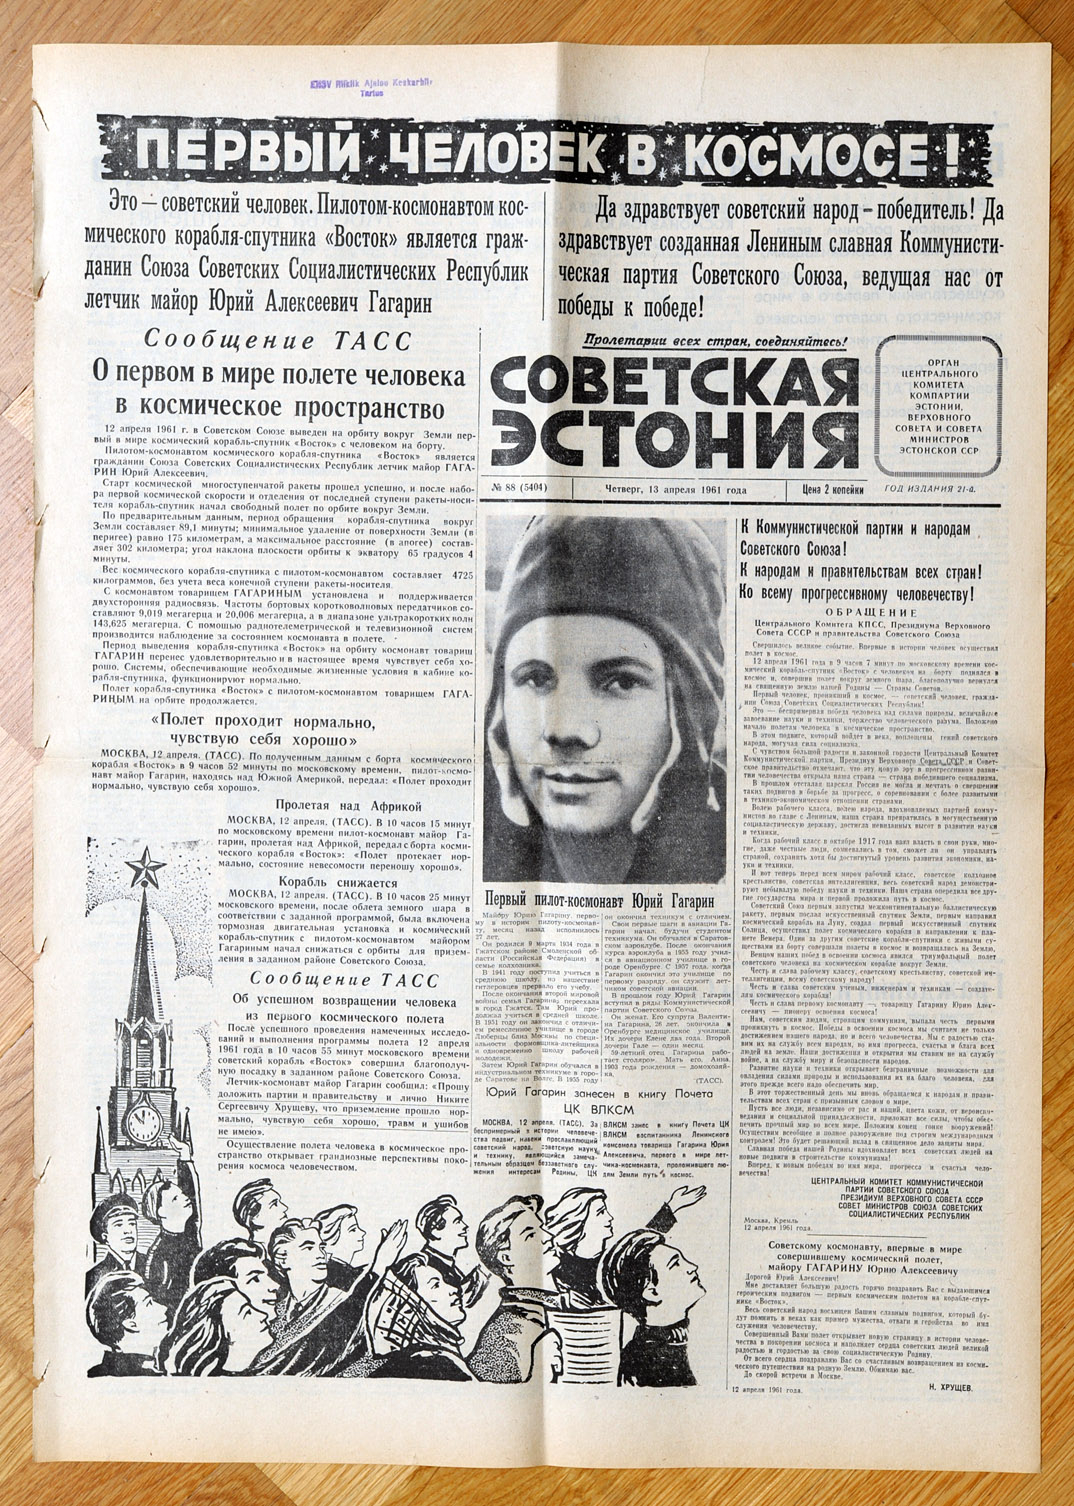 yuri gagarin newspaper - photo #5